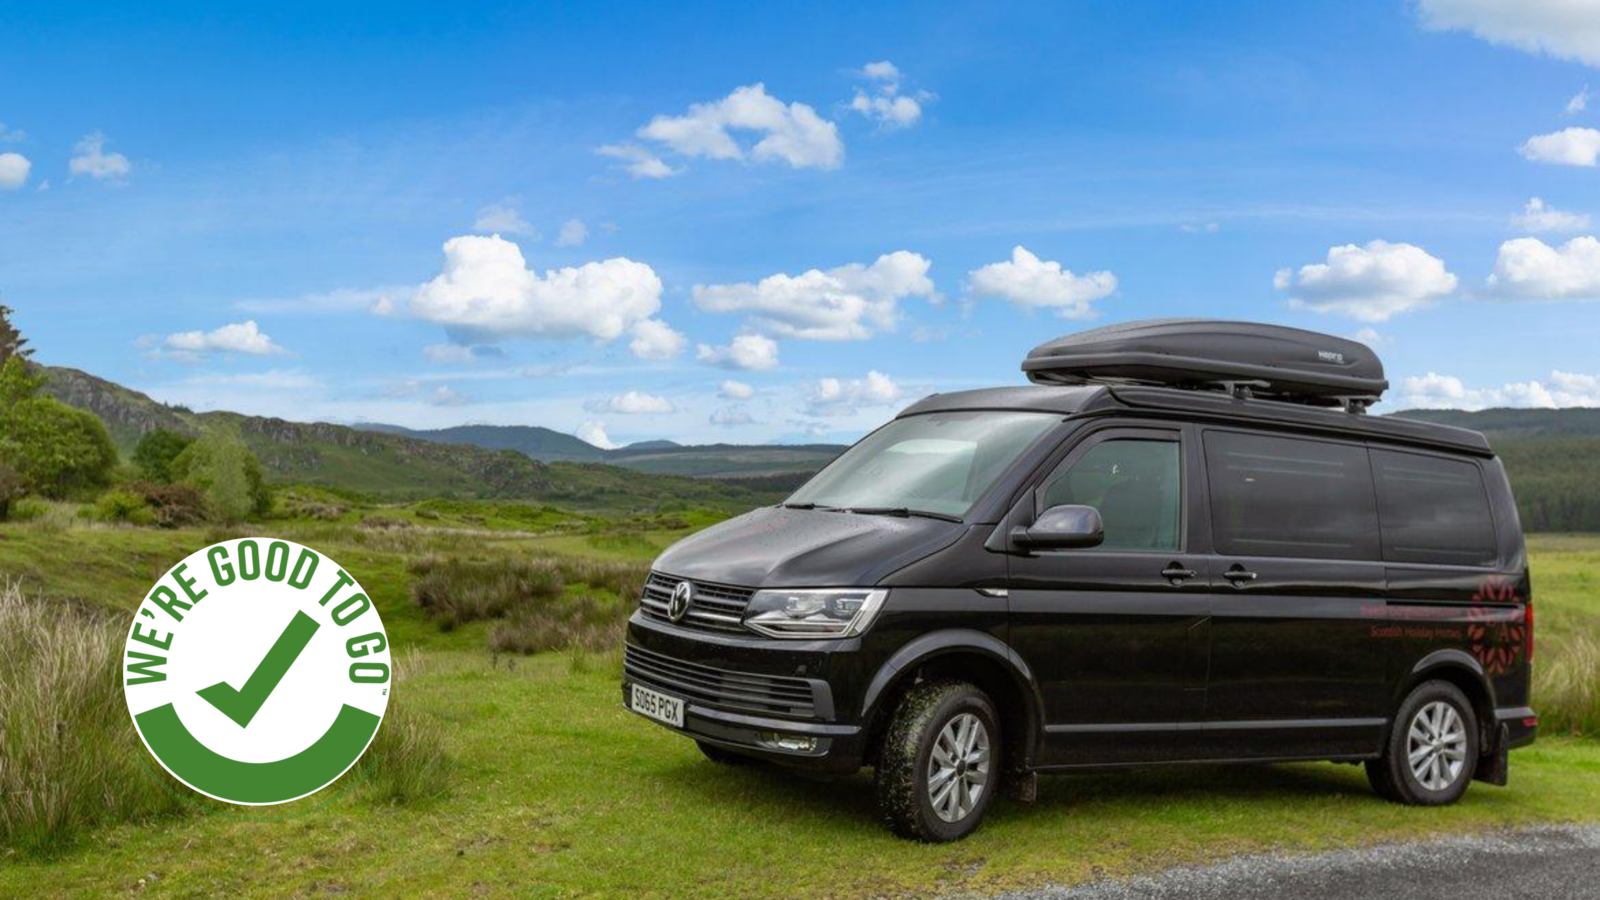 Bonnie the Campervan - Hire campervan Edinburgh - Explore Scotland with your own upgraded luxury Campervan